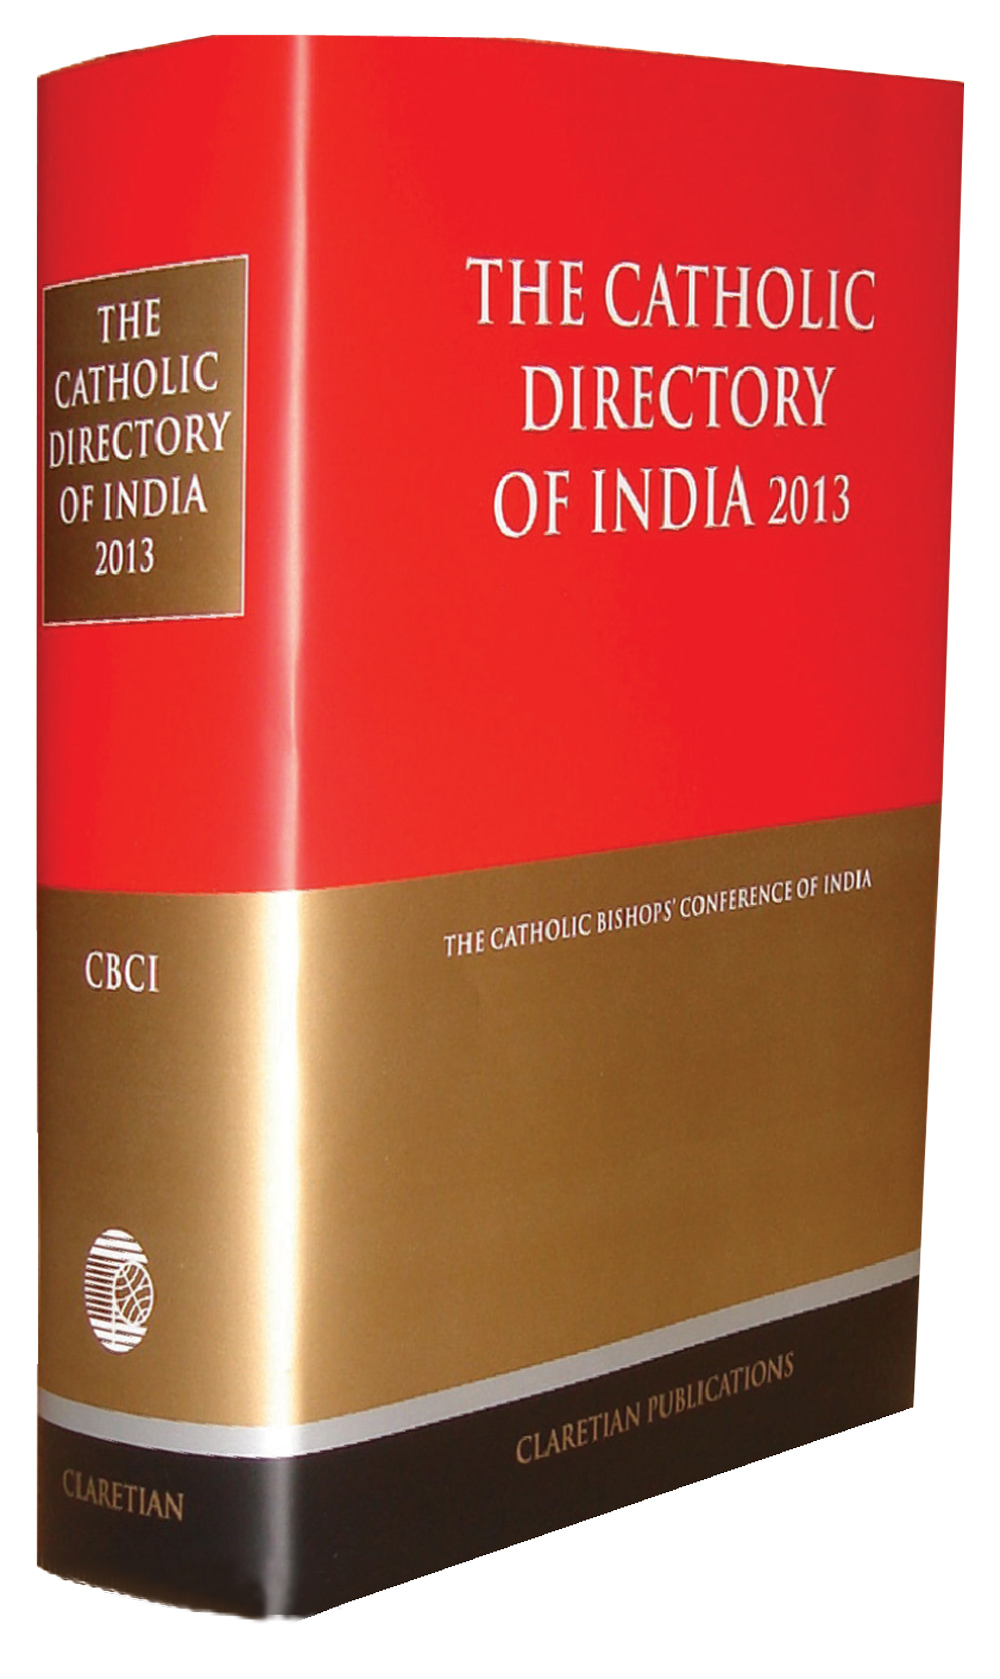 CATHOLIC DIRECTORY OF INDIA - 2013